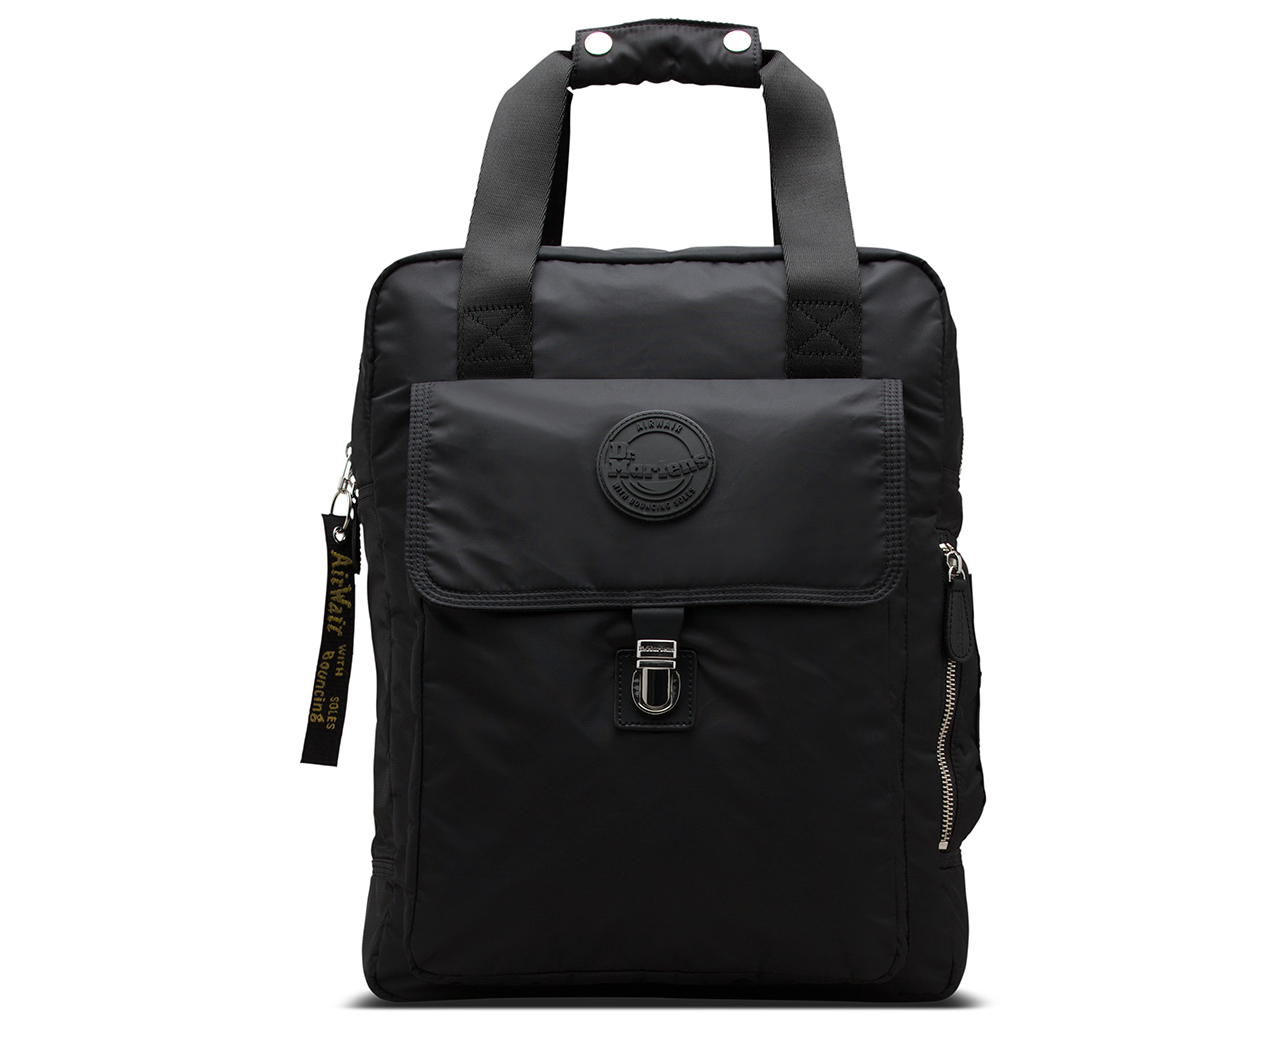 679e11d71f5a LARGE NYLON BACKPACK